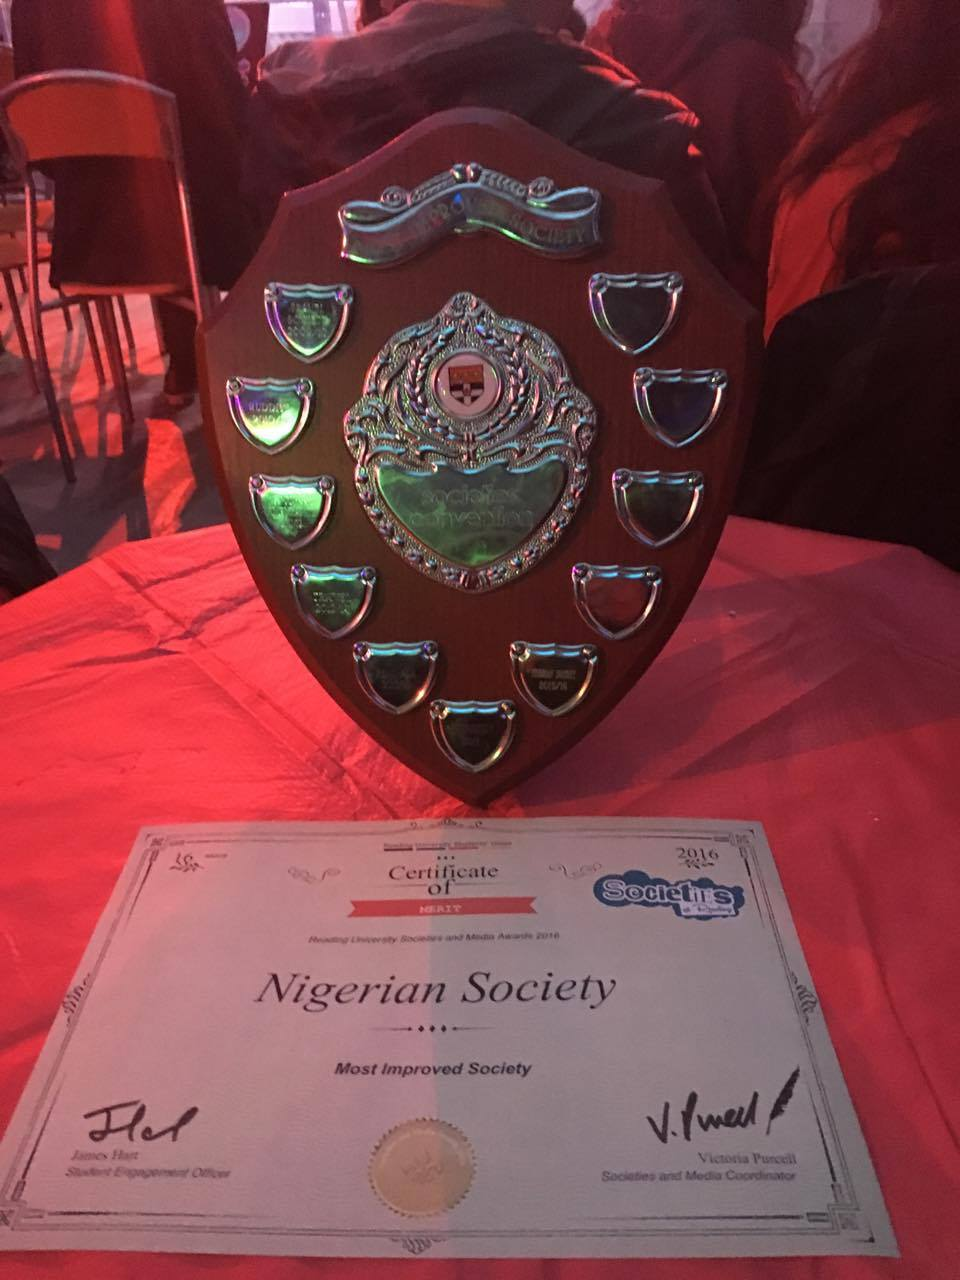 RUSU Award for Most Improved Society 2015/2016